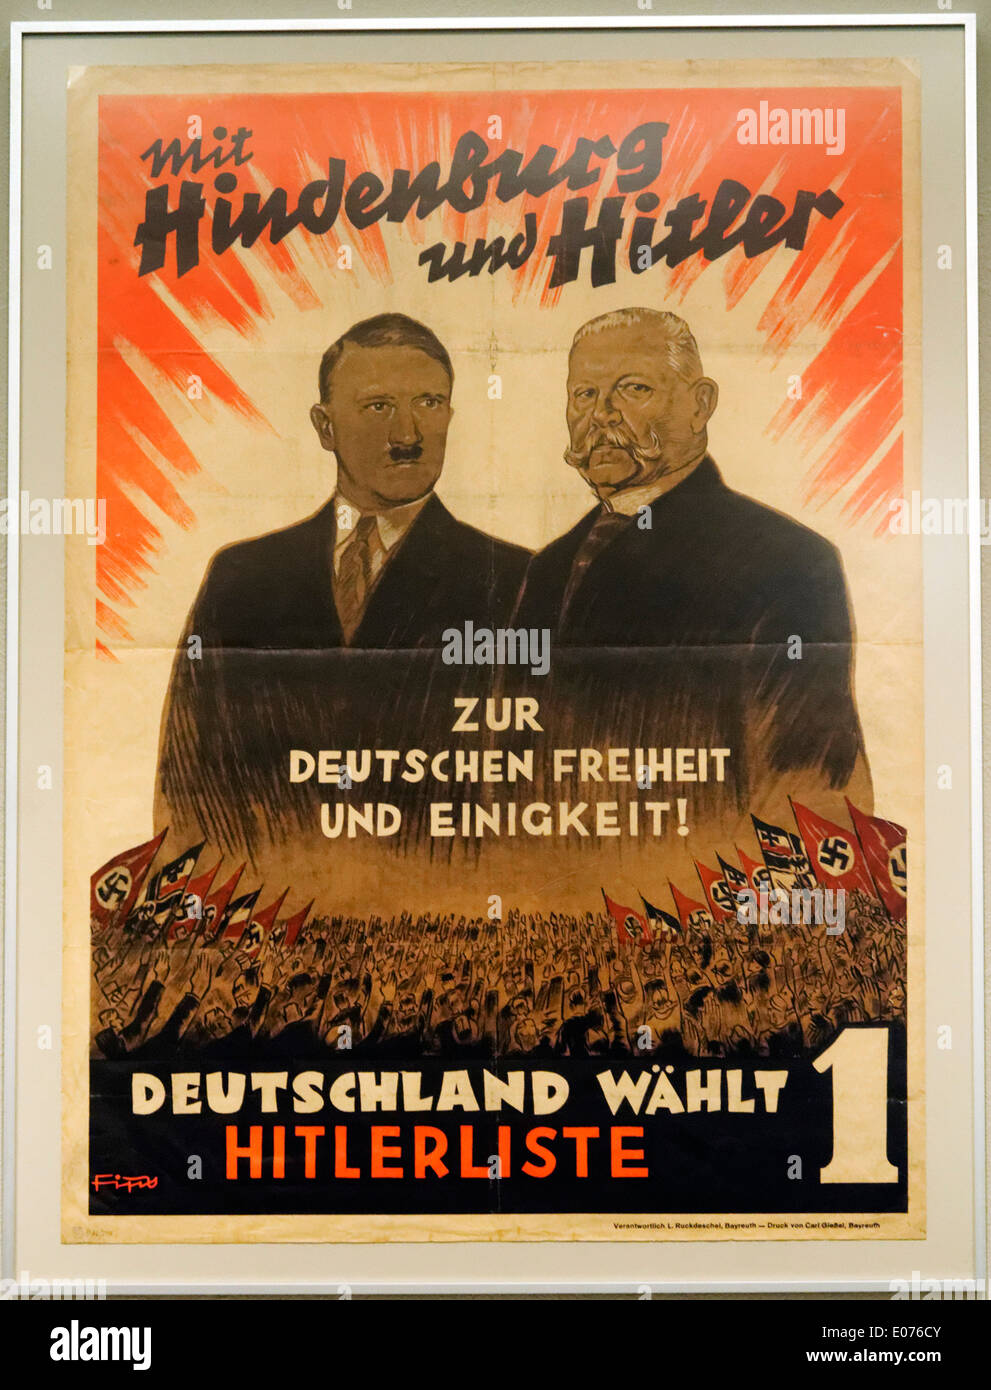 A nazi election poster of Hitler + Hindenburg, with the slogan 'with Hitler and Hindenburg towards German freedom and unity' - Stock Image